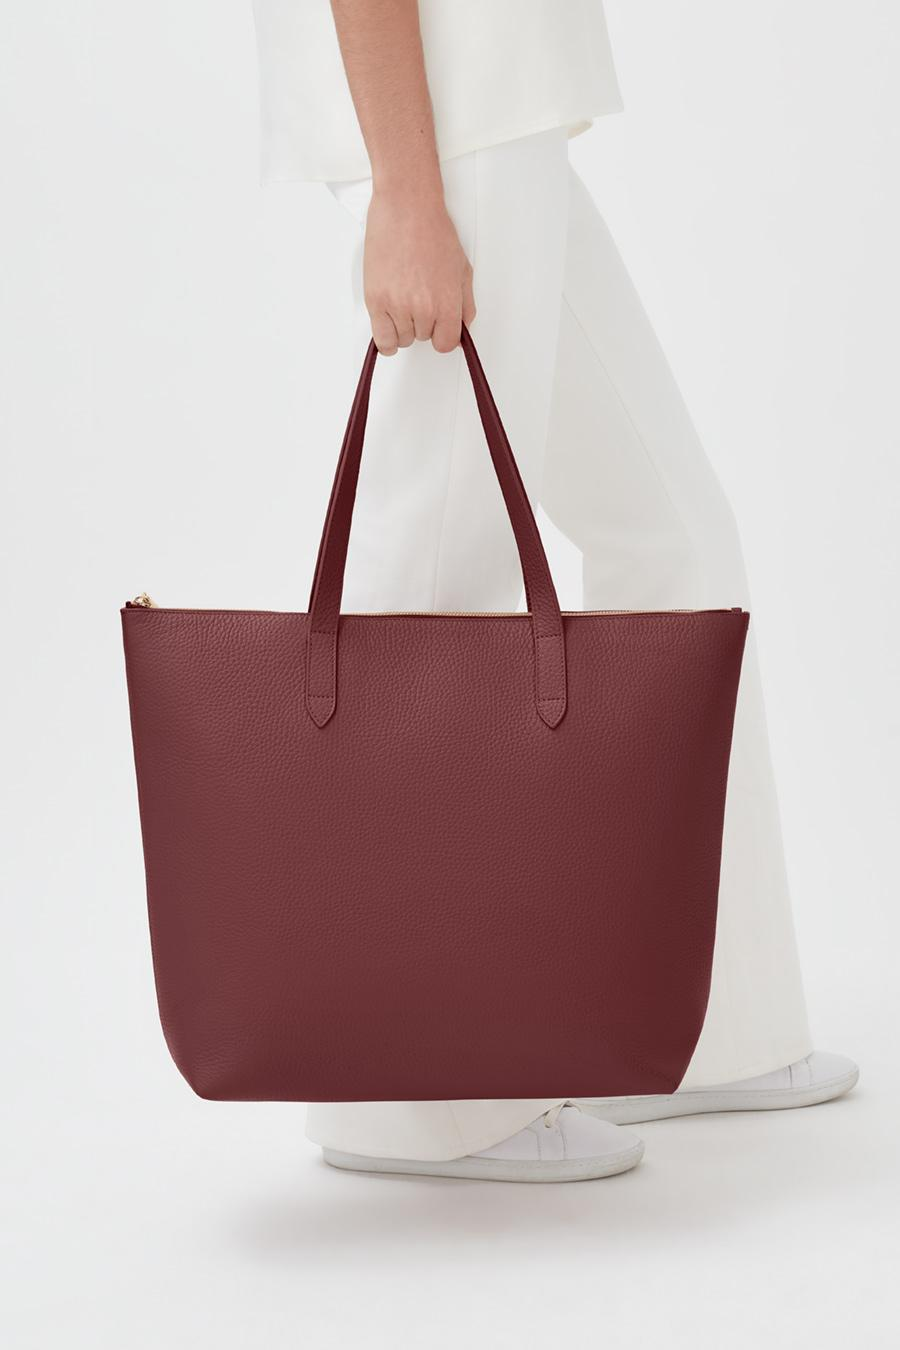 Women's Classic Leather Zipper Tote Bag in Merlot Painted | Pebbled Leather by Cuyana 3